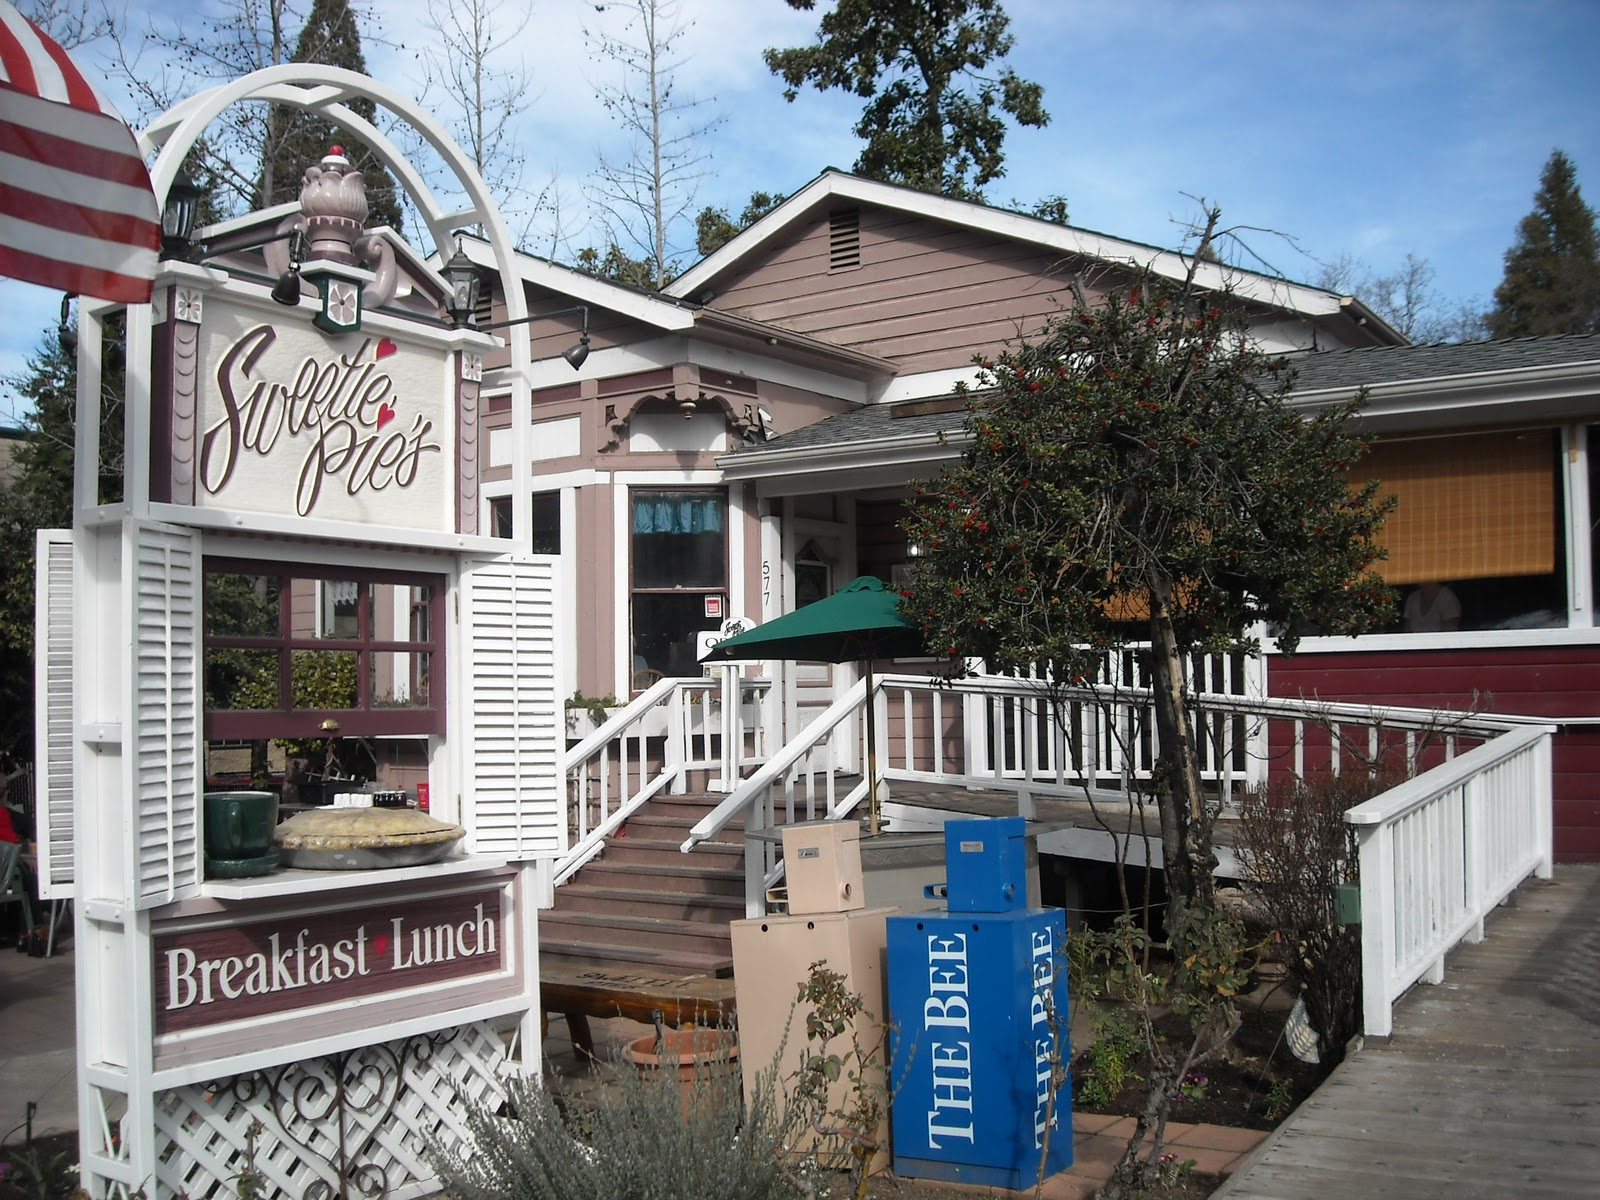 Backyard Nursery Placerville : Lots of cute old buildings in the old part of town